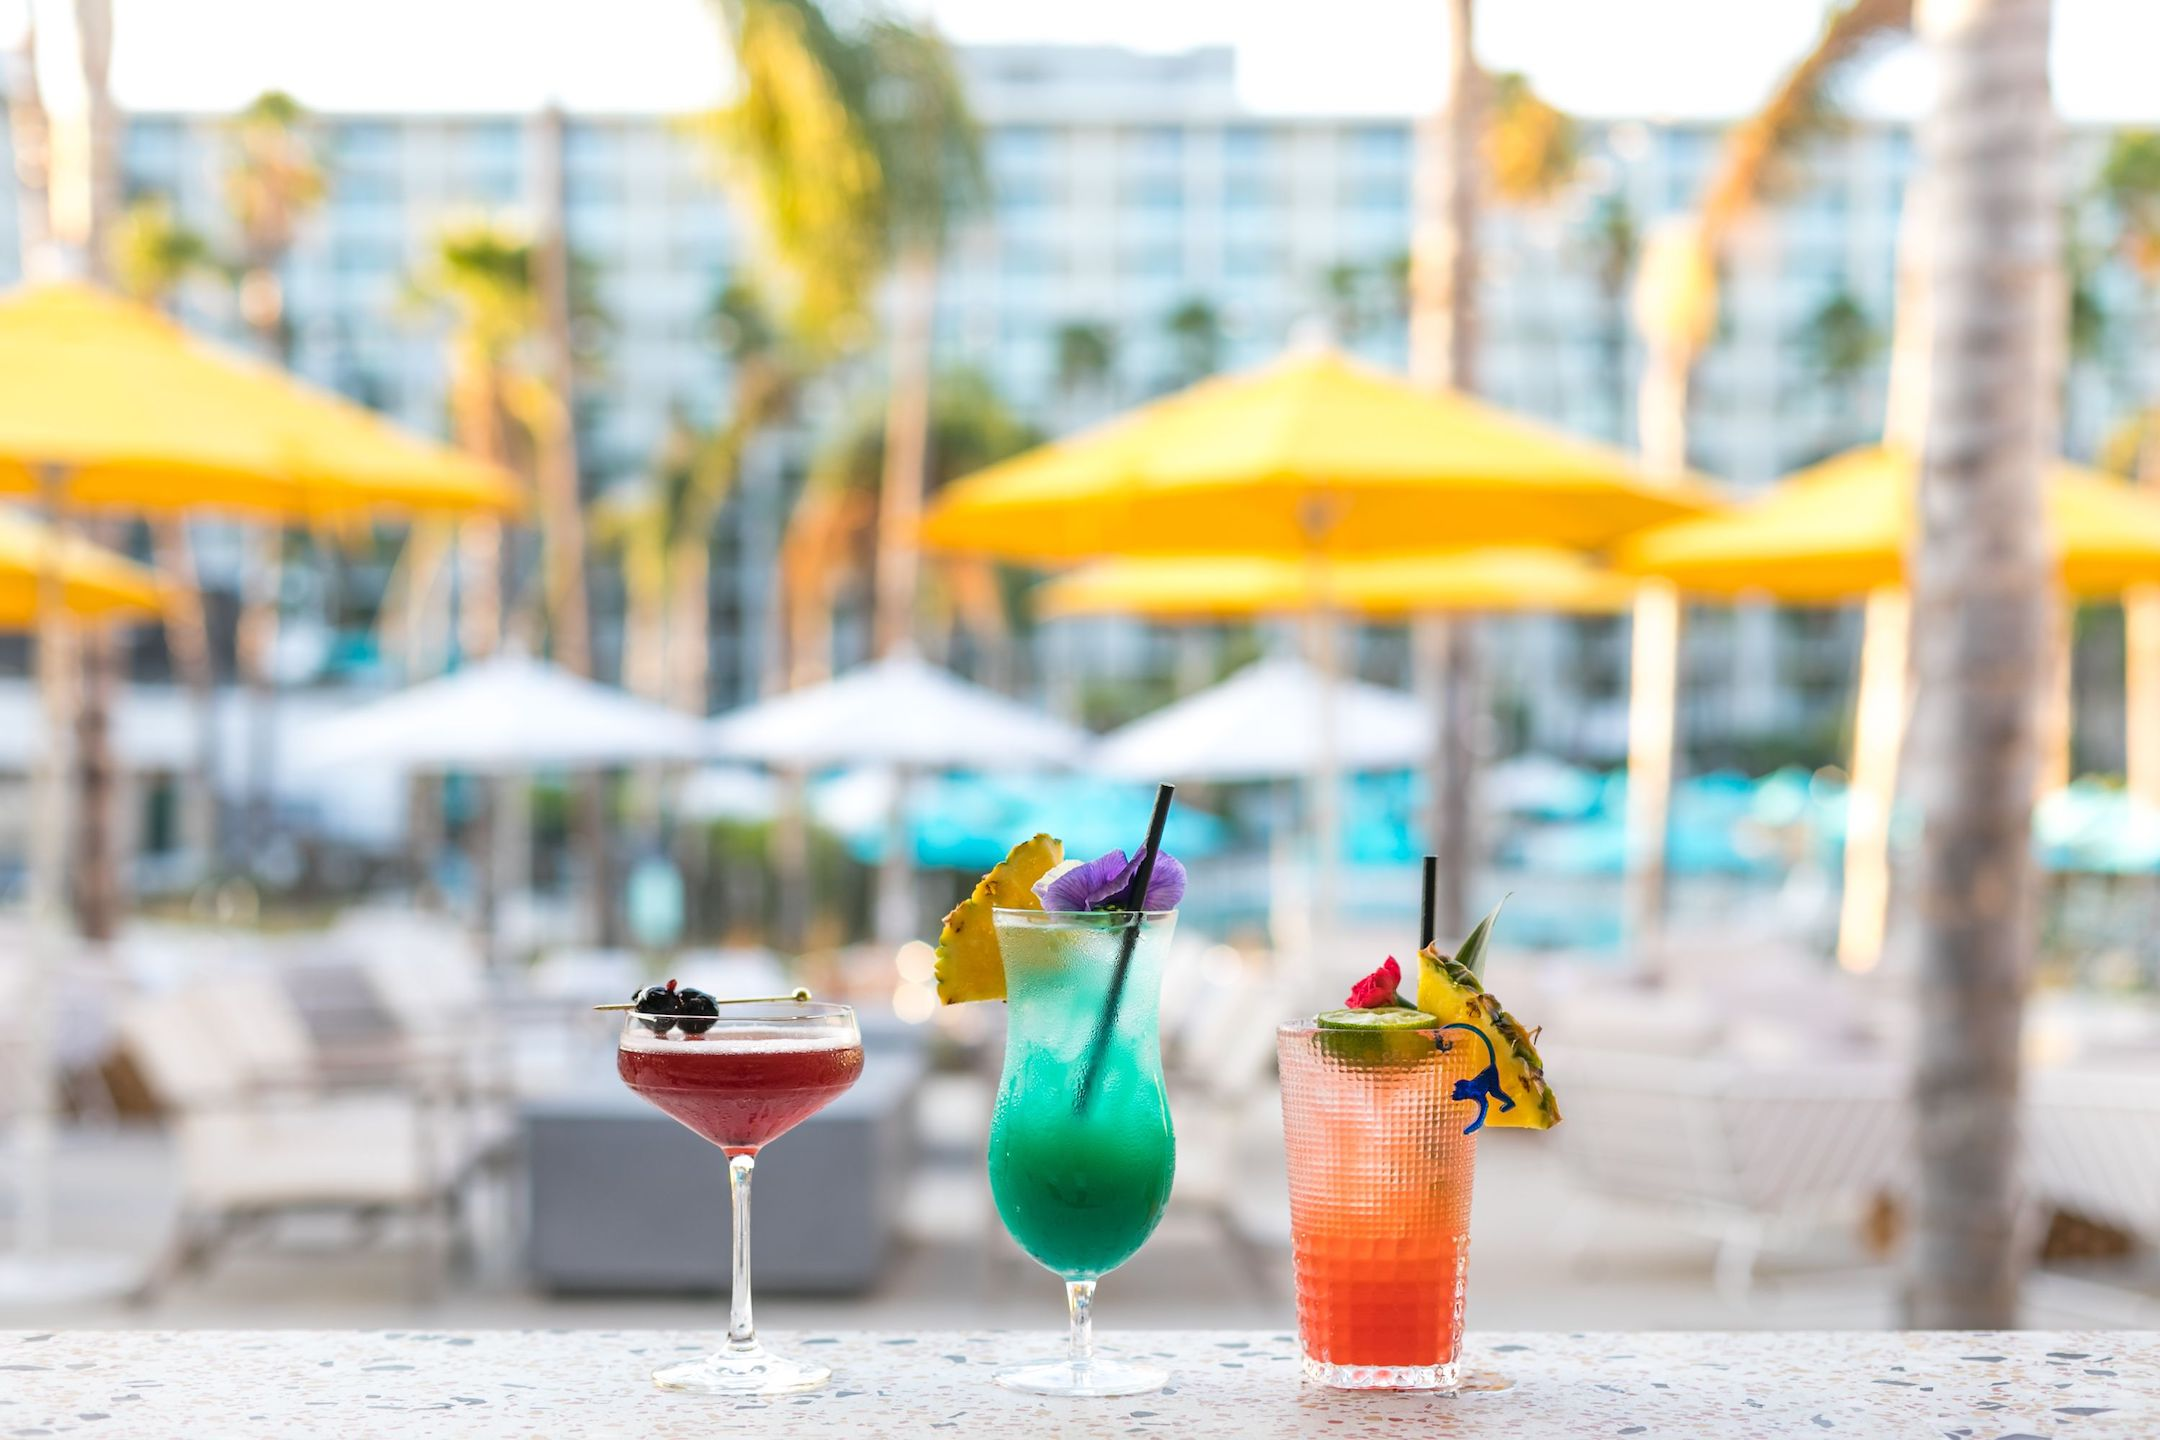 3 colorful drinks sitting on a table at a landmark resort.